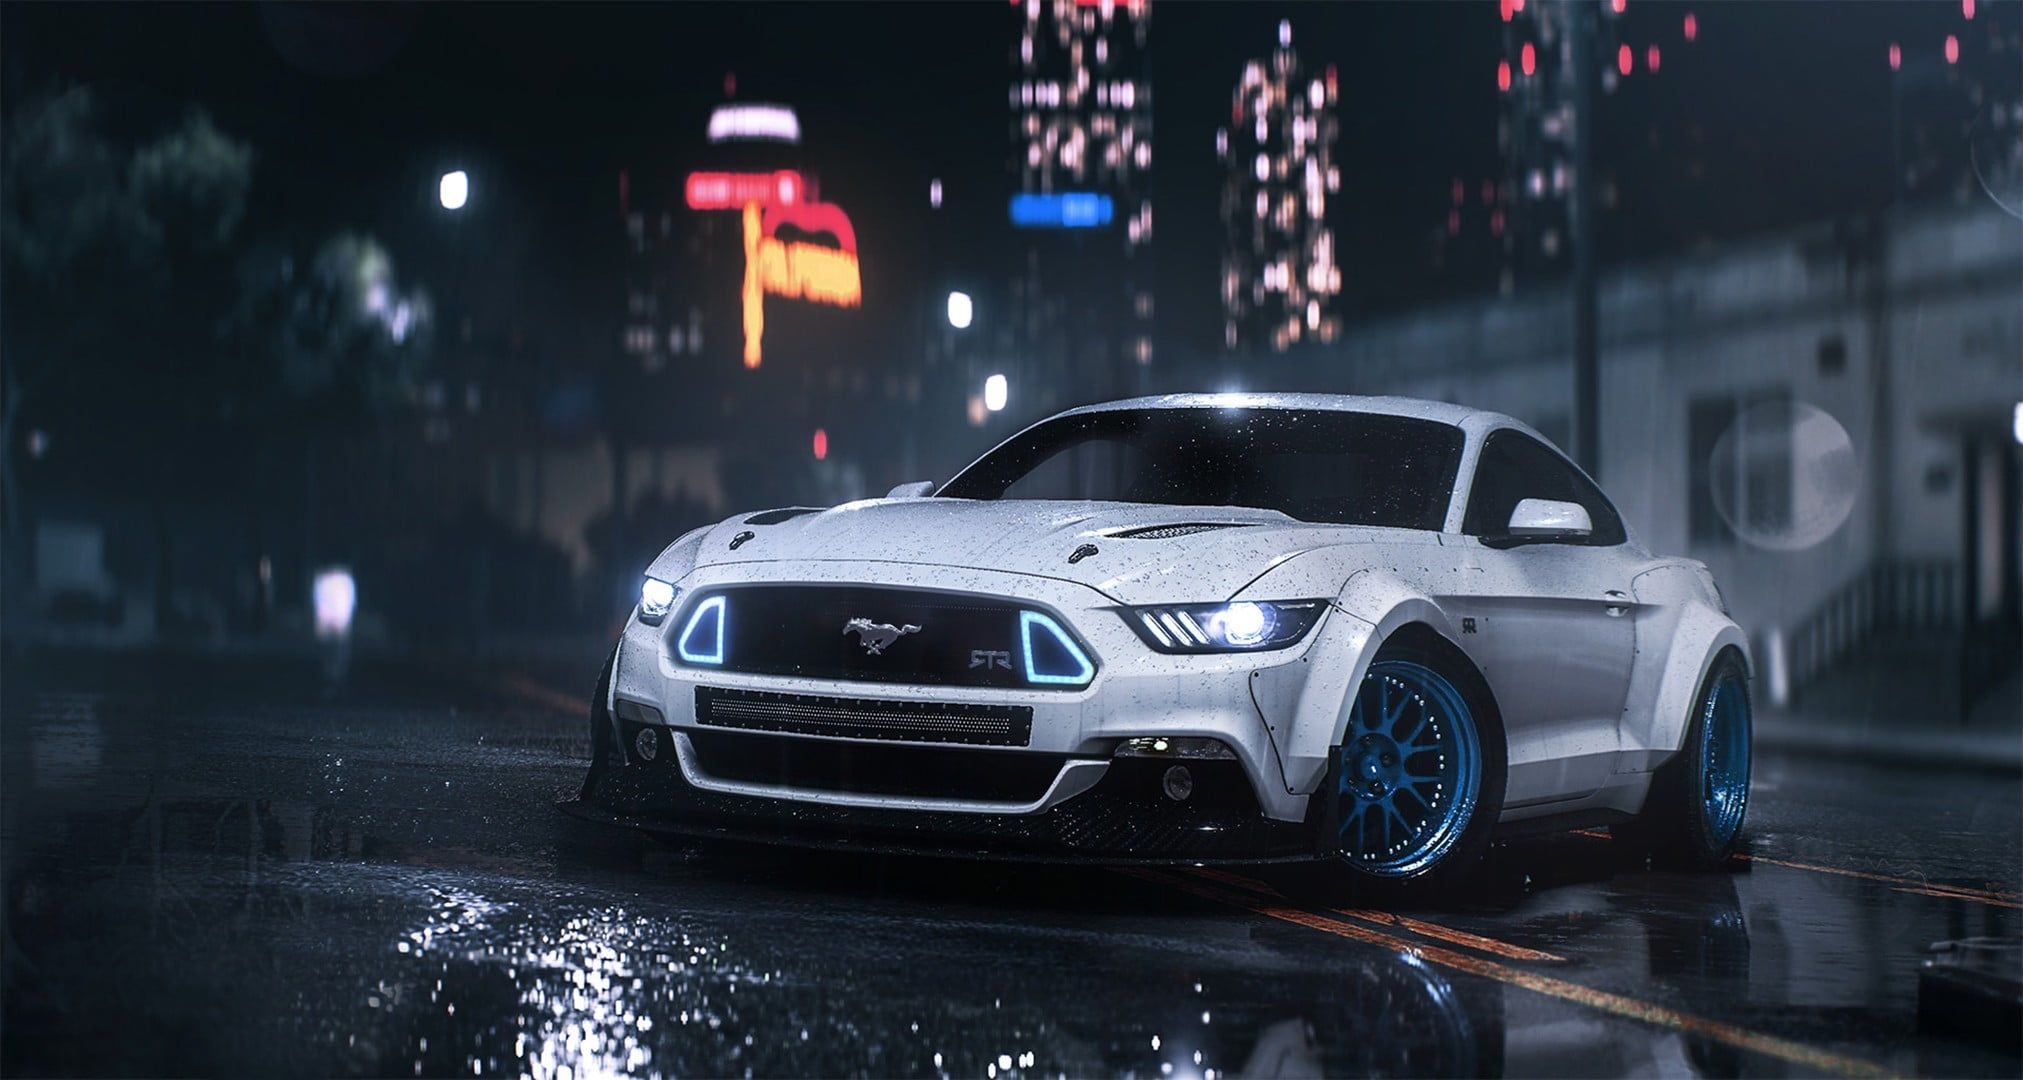 White Ford Mustang Vehicle Car Ford Mustang Need For Speed 1080p Wallpaper Hdwallpaper Desktop In 2020 Mustang Wallpaper Ford Mustang Wallpaper New Ford Mustang